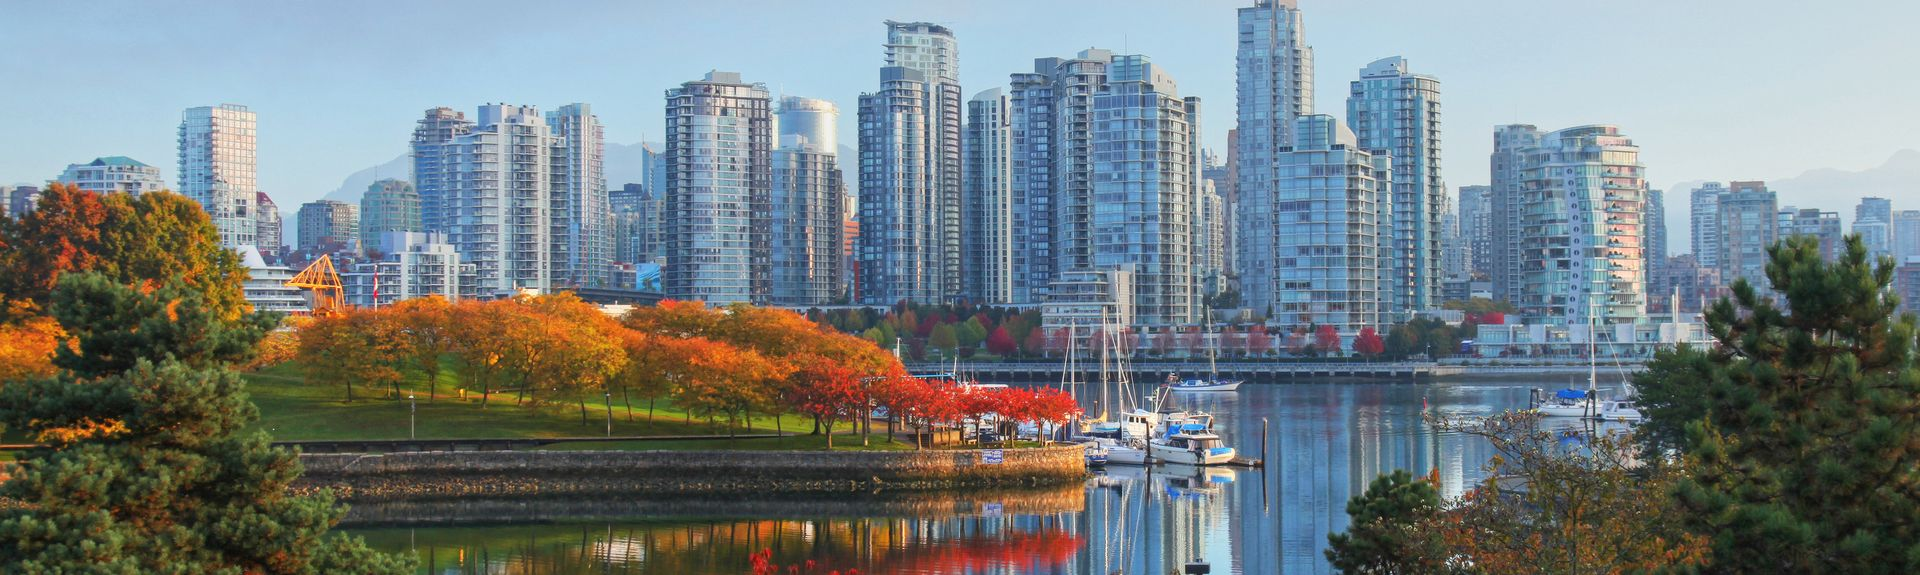 Coal Harbour, Coal Harbour, Vancouver, BC, Canada